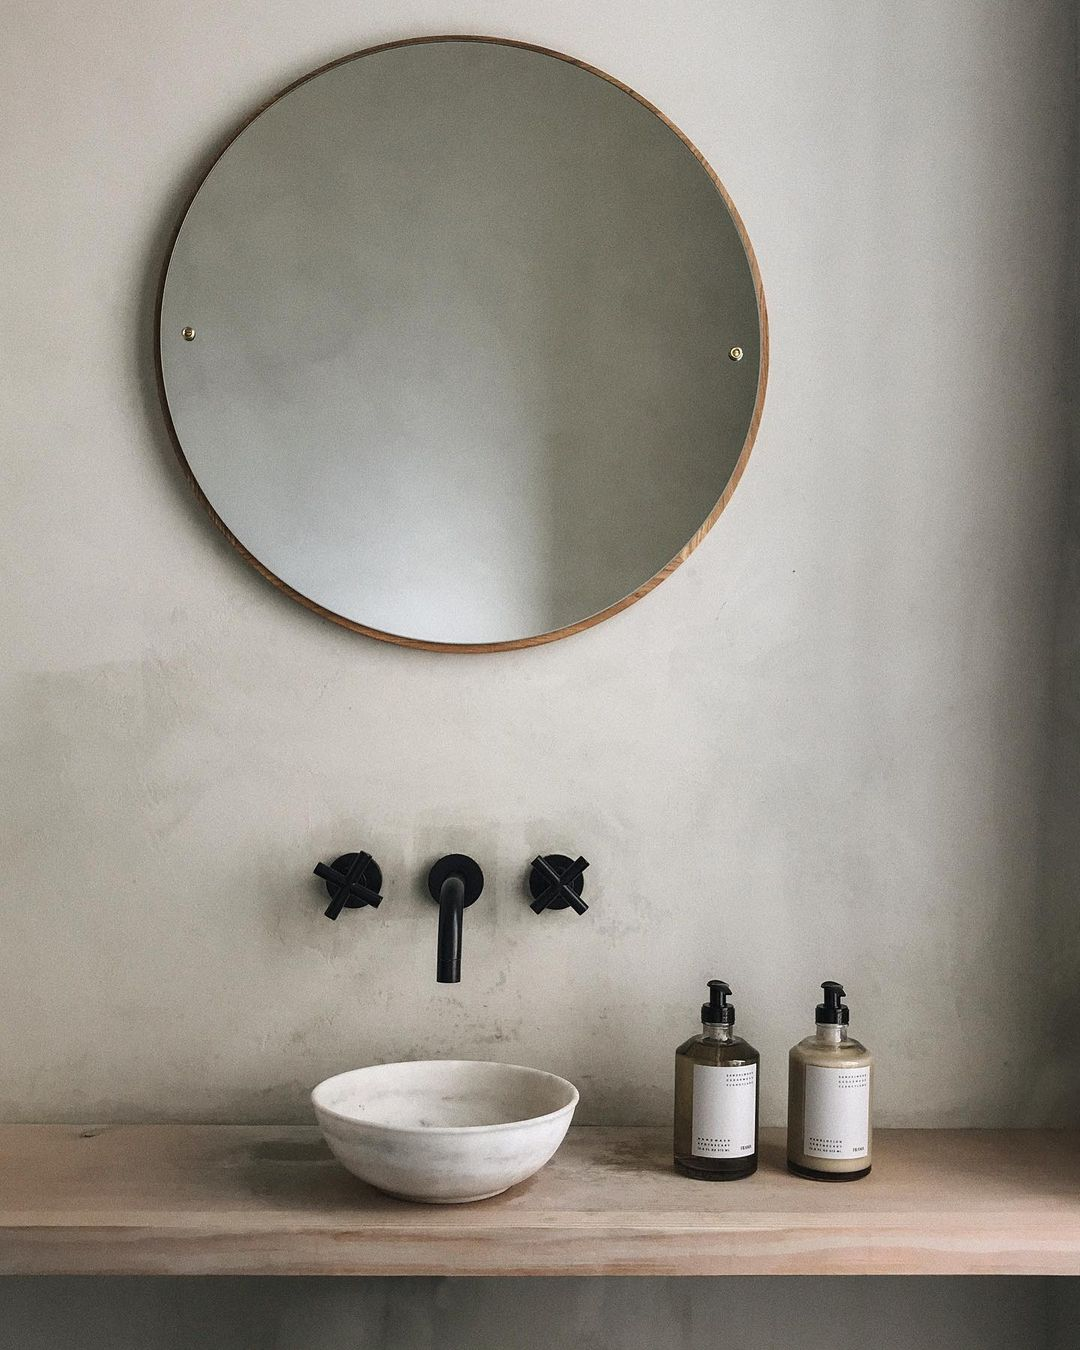 Serene, minimal, rustic bathroom design with vessel sink and round mirror - @framacph.